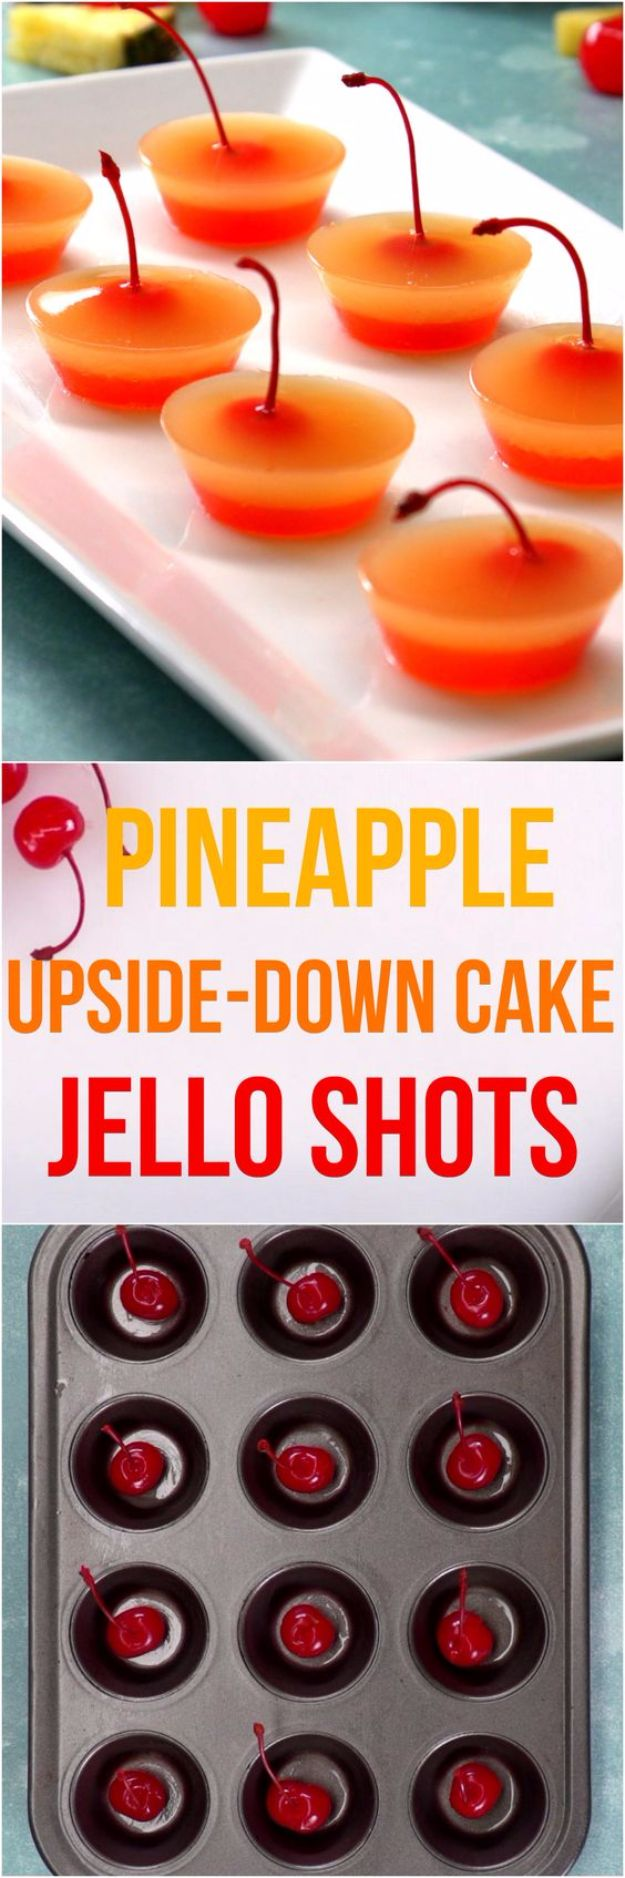 Best Jello Shot Recipes - Pineapple Upside-Down Cake Jell-O Shots - Easy Jello Shots Recipe Ideas with Vodka, Strawberry, Tequila, Rum, Jolly Rancher and Creative Alcohol - Unique and Fun Drinks for Parties like Whiskey Fireball, Fall Halloween Versions, Malibu, 4th of July, Birthday, Summer, Christmas and Birthdays http://diyjoy.com/best-jello-shot-recipes